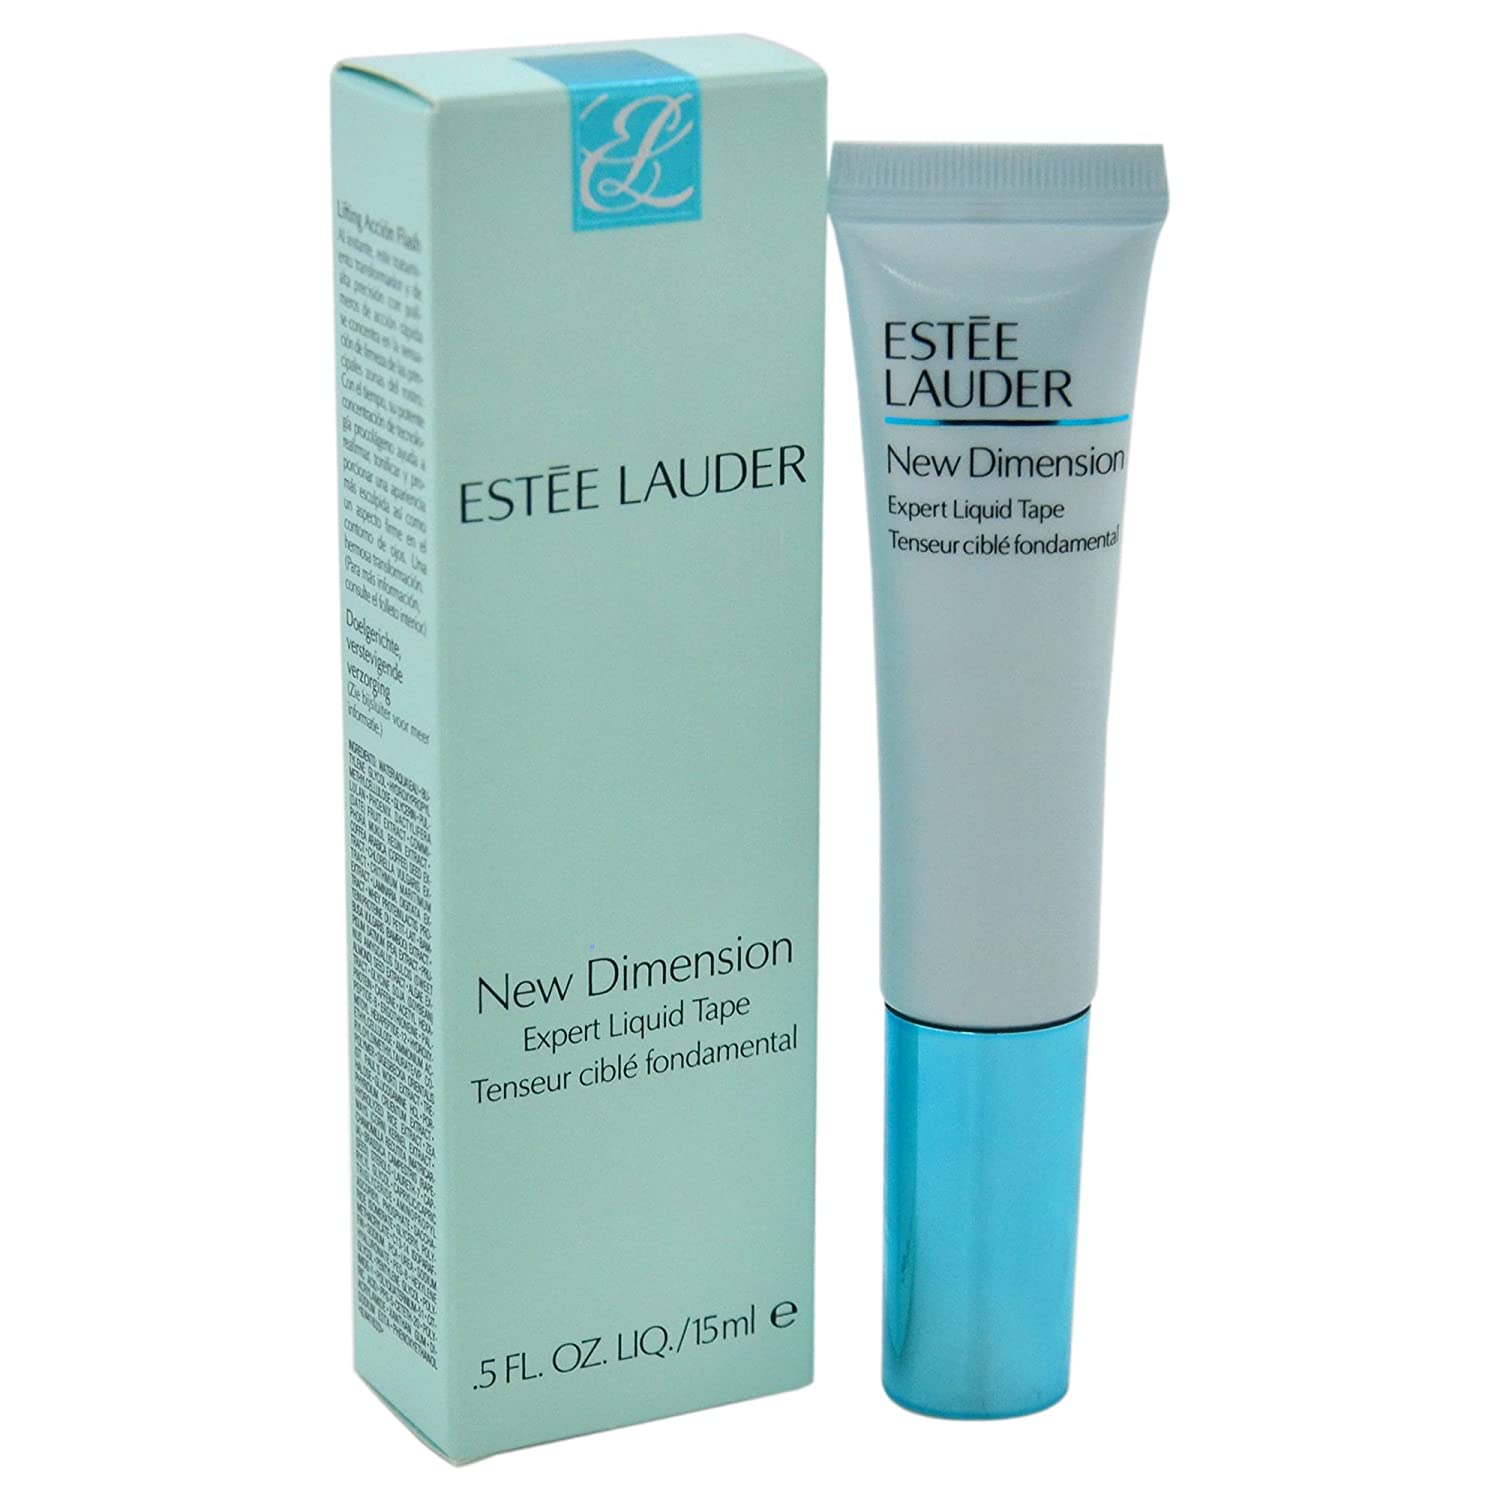 Estee Lauder Women's New Dimension Expert Liquid Tape Treatment, 0.50 Ounce PerfumeWorldWide Inc. Drop Ship C-EL-515-15 R69J01R000_-15